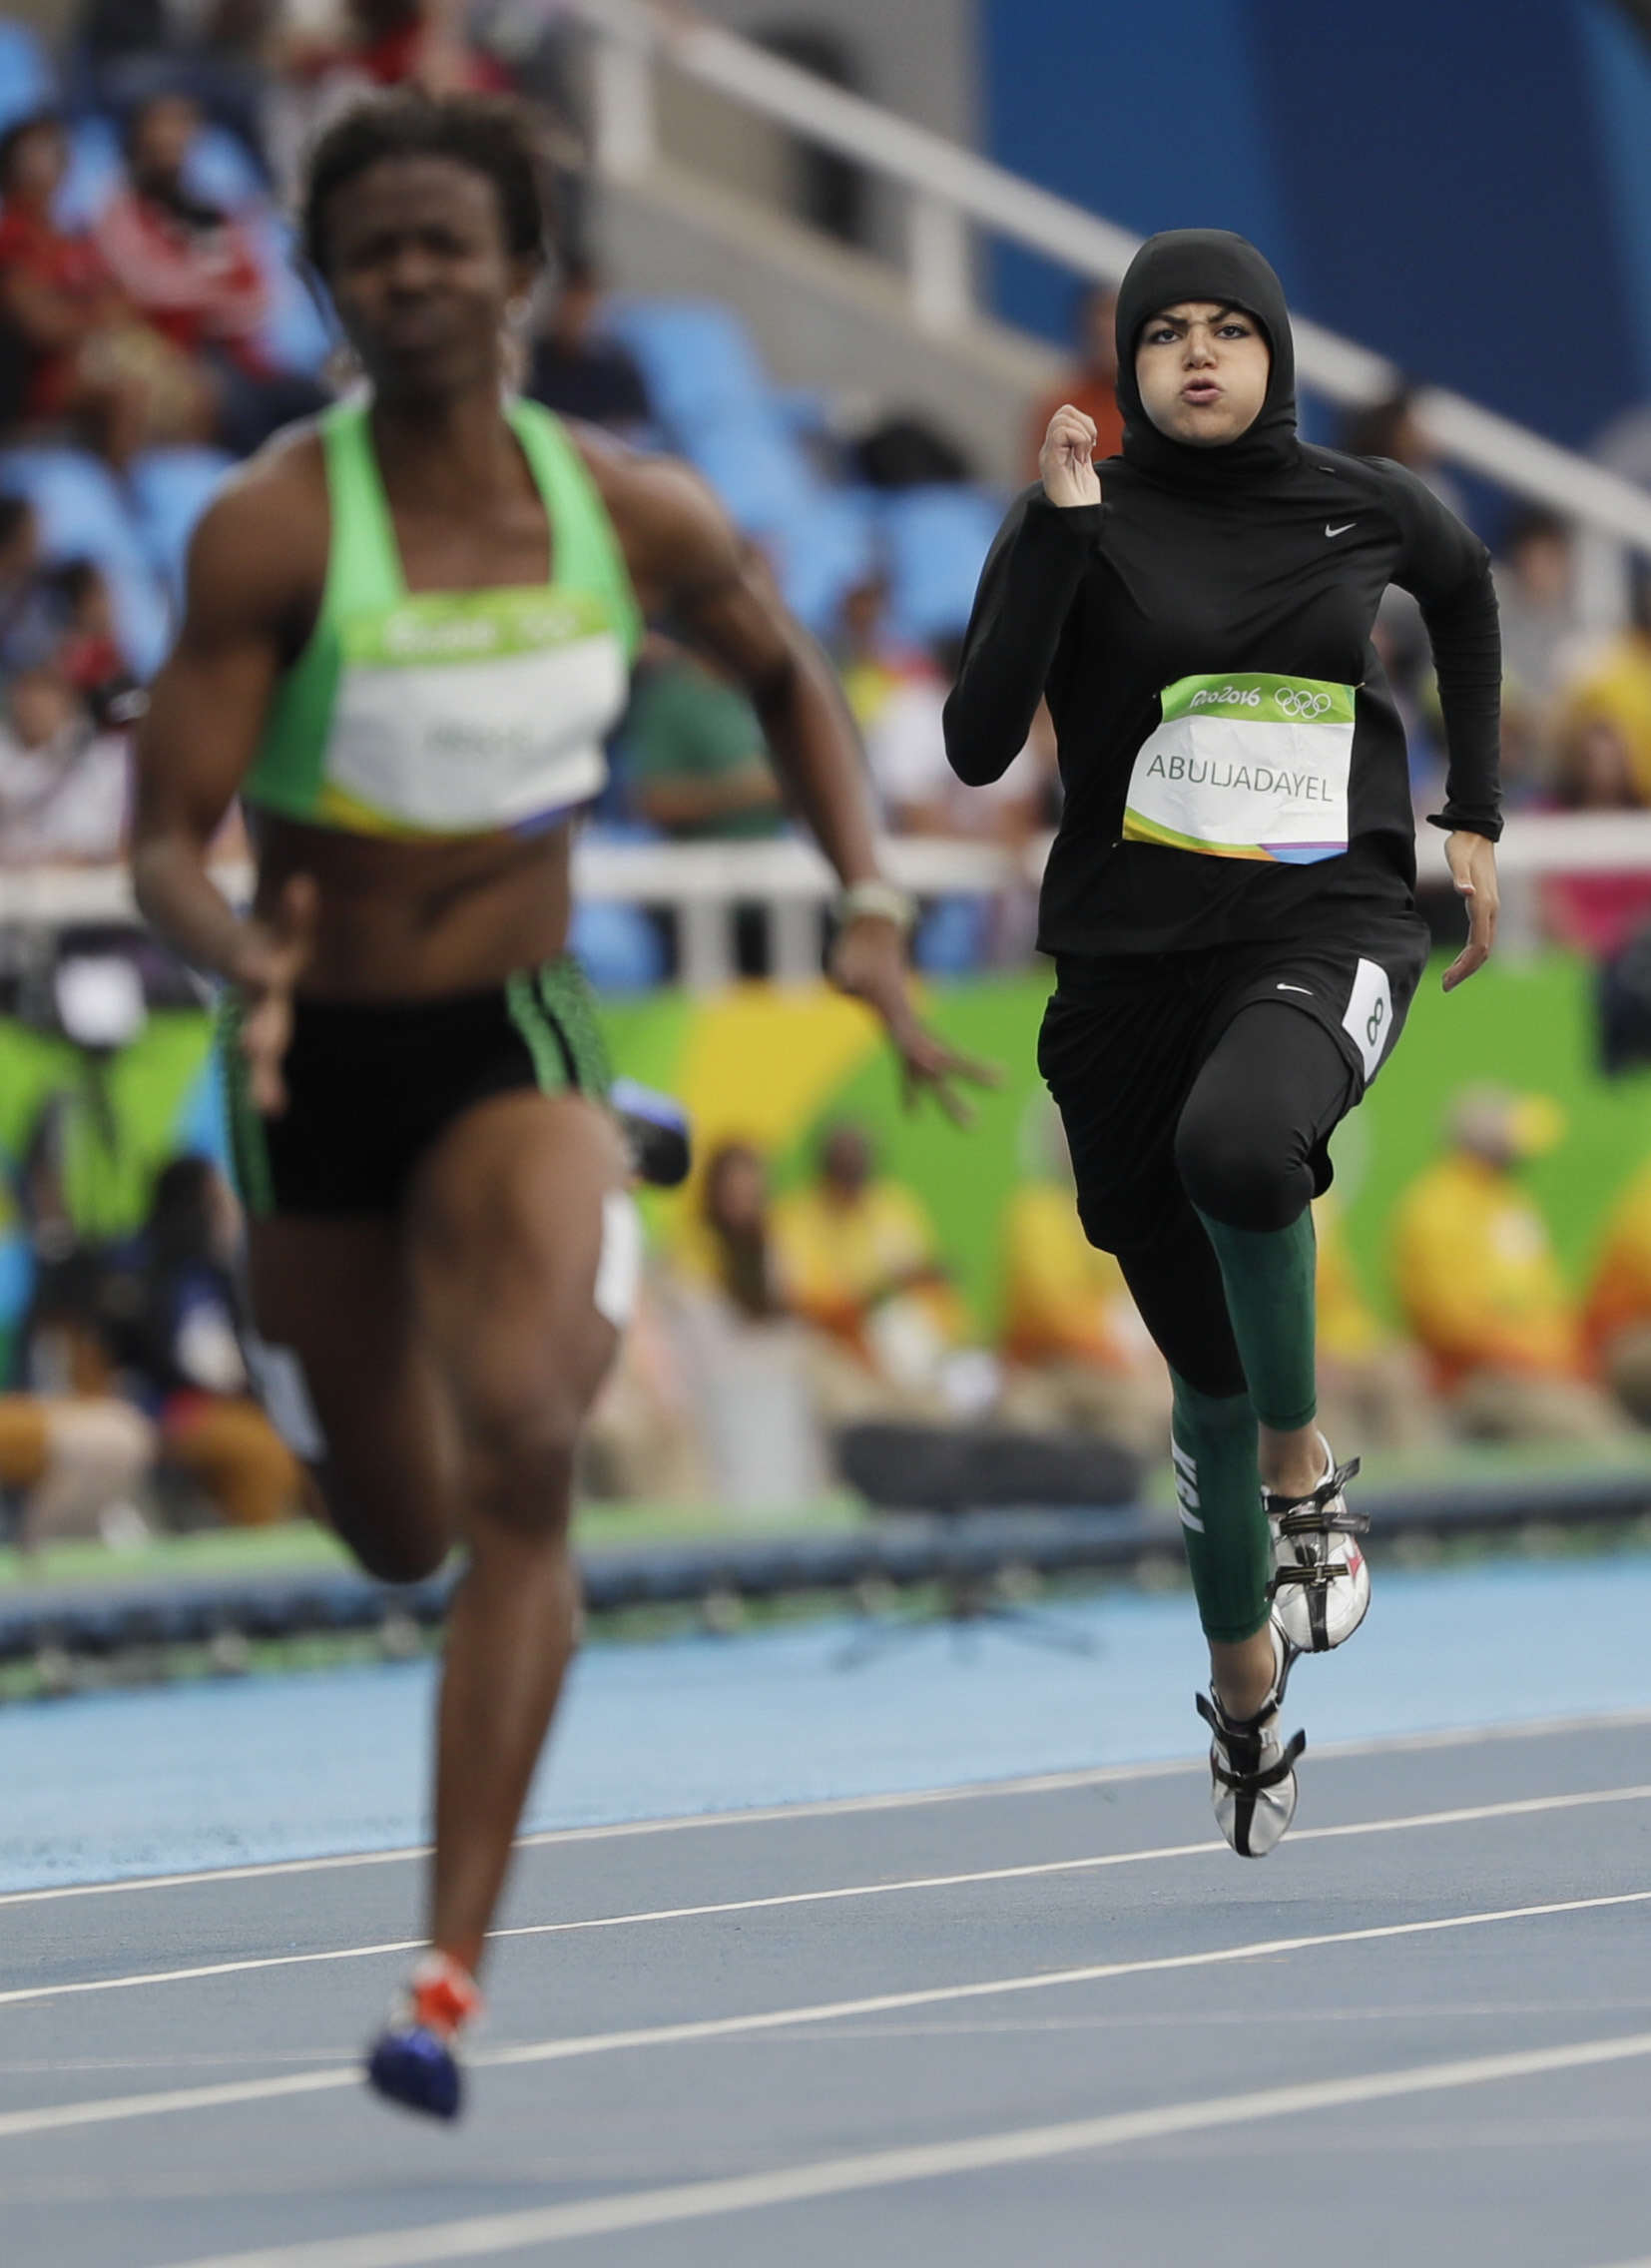 Historic Moment Sprinter Becomes First Saudi Woman To Run 100m At Olympics PA 28330946